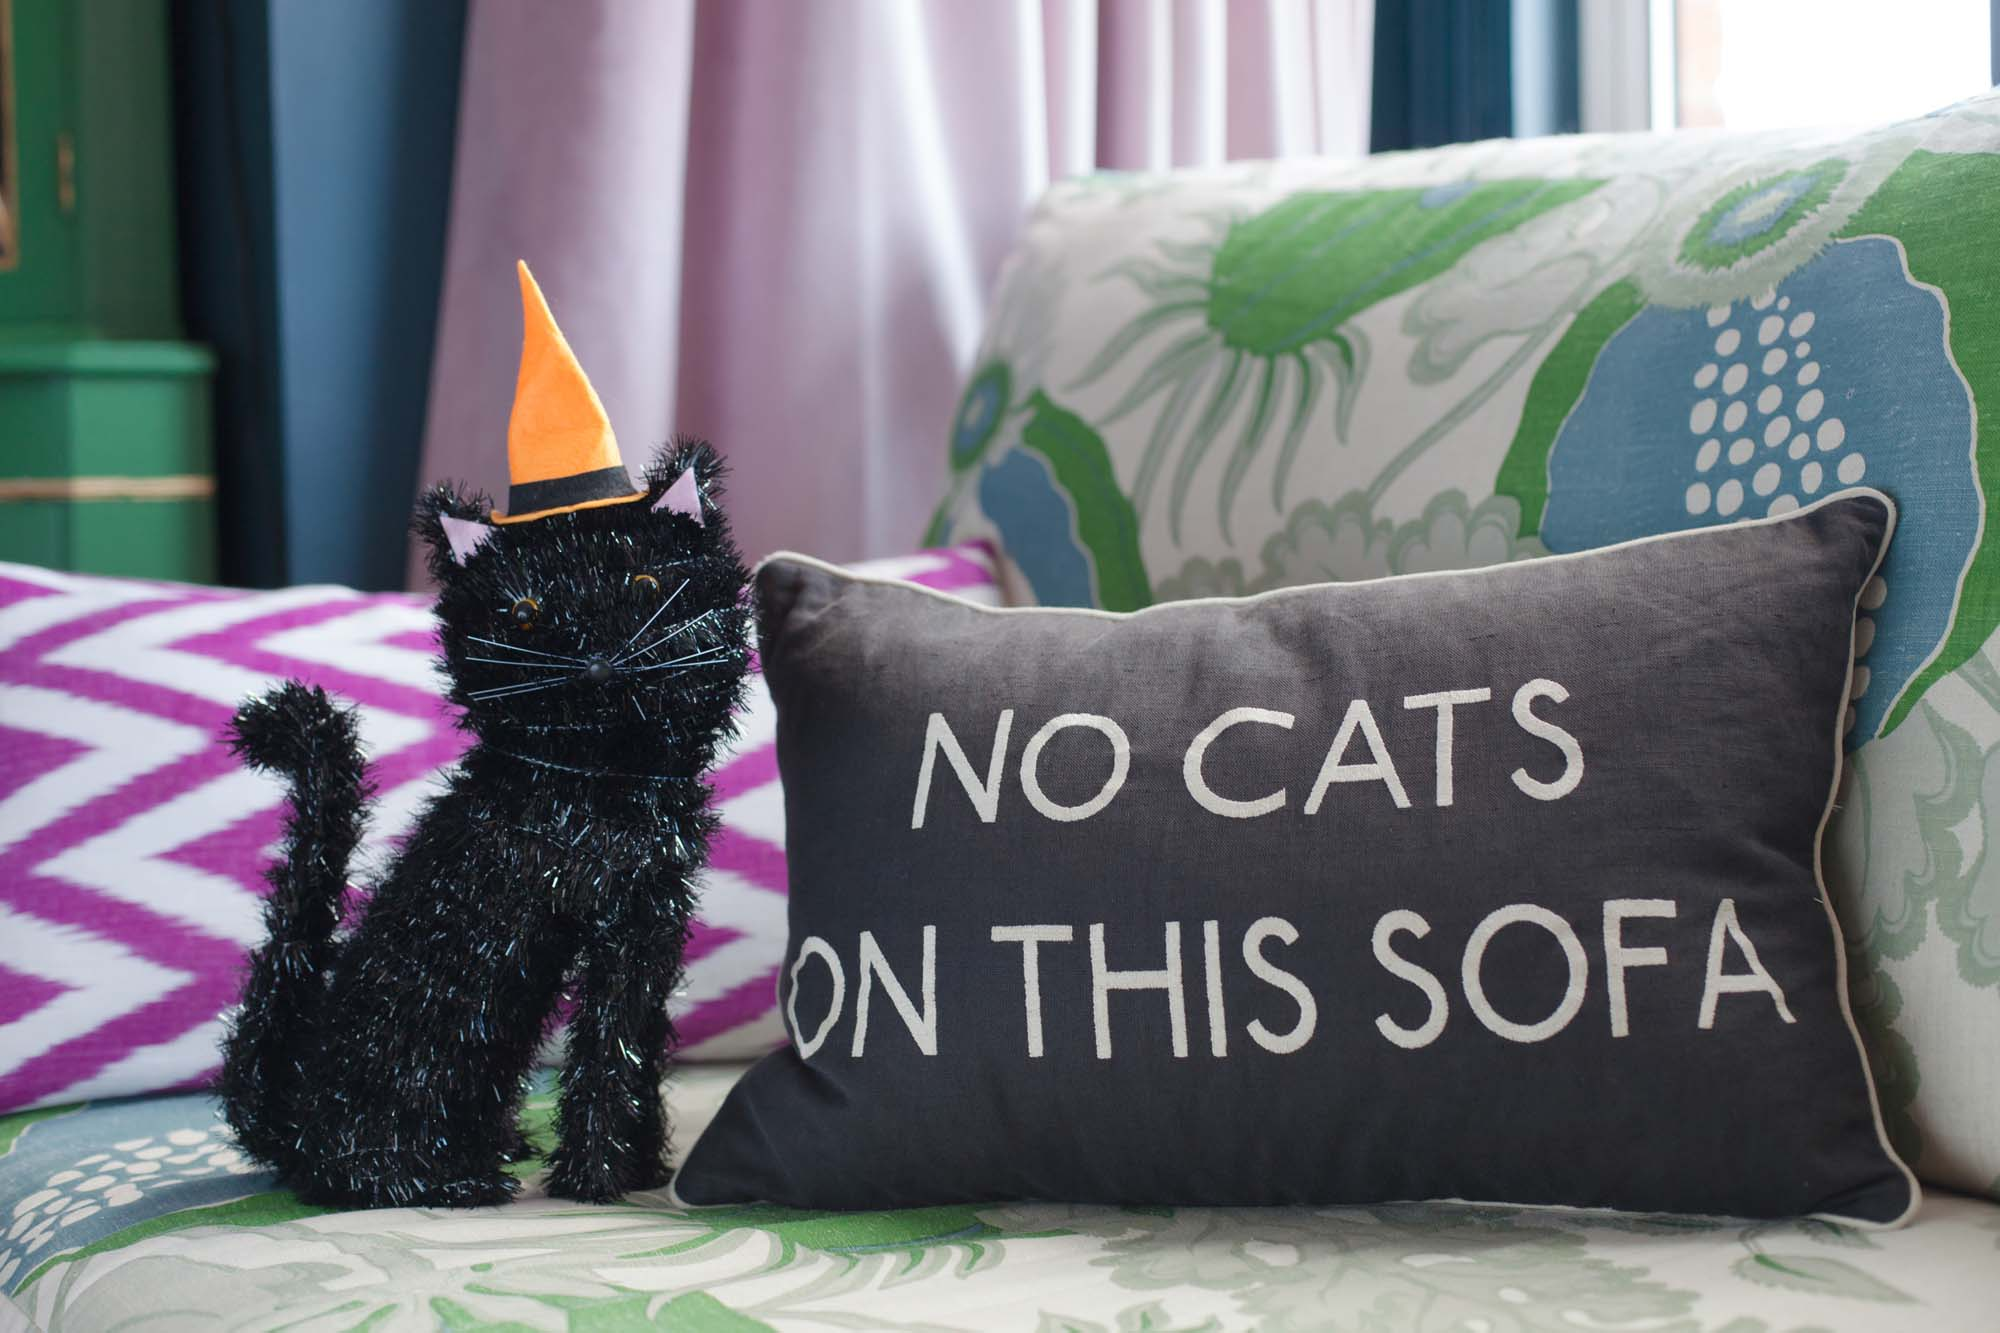 No cats on this sofa at Halloween